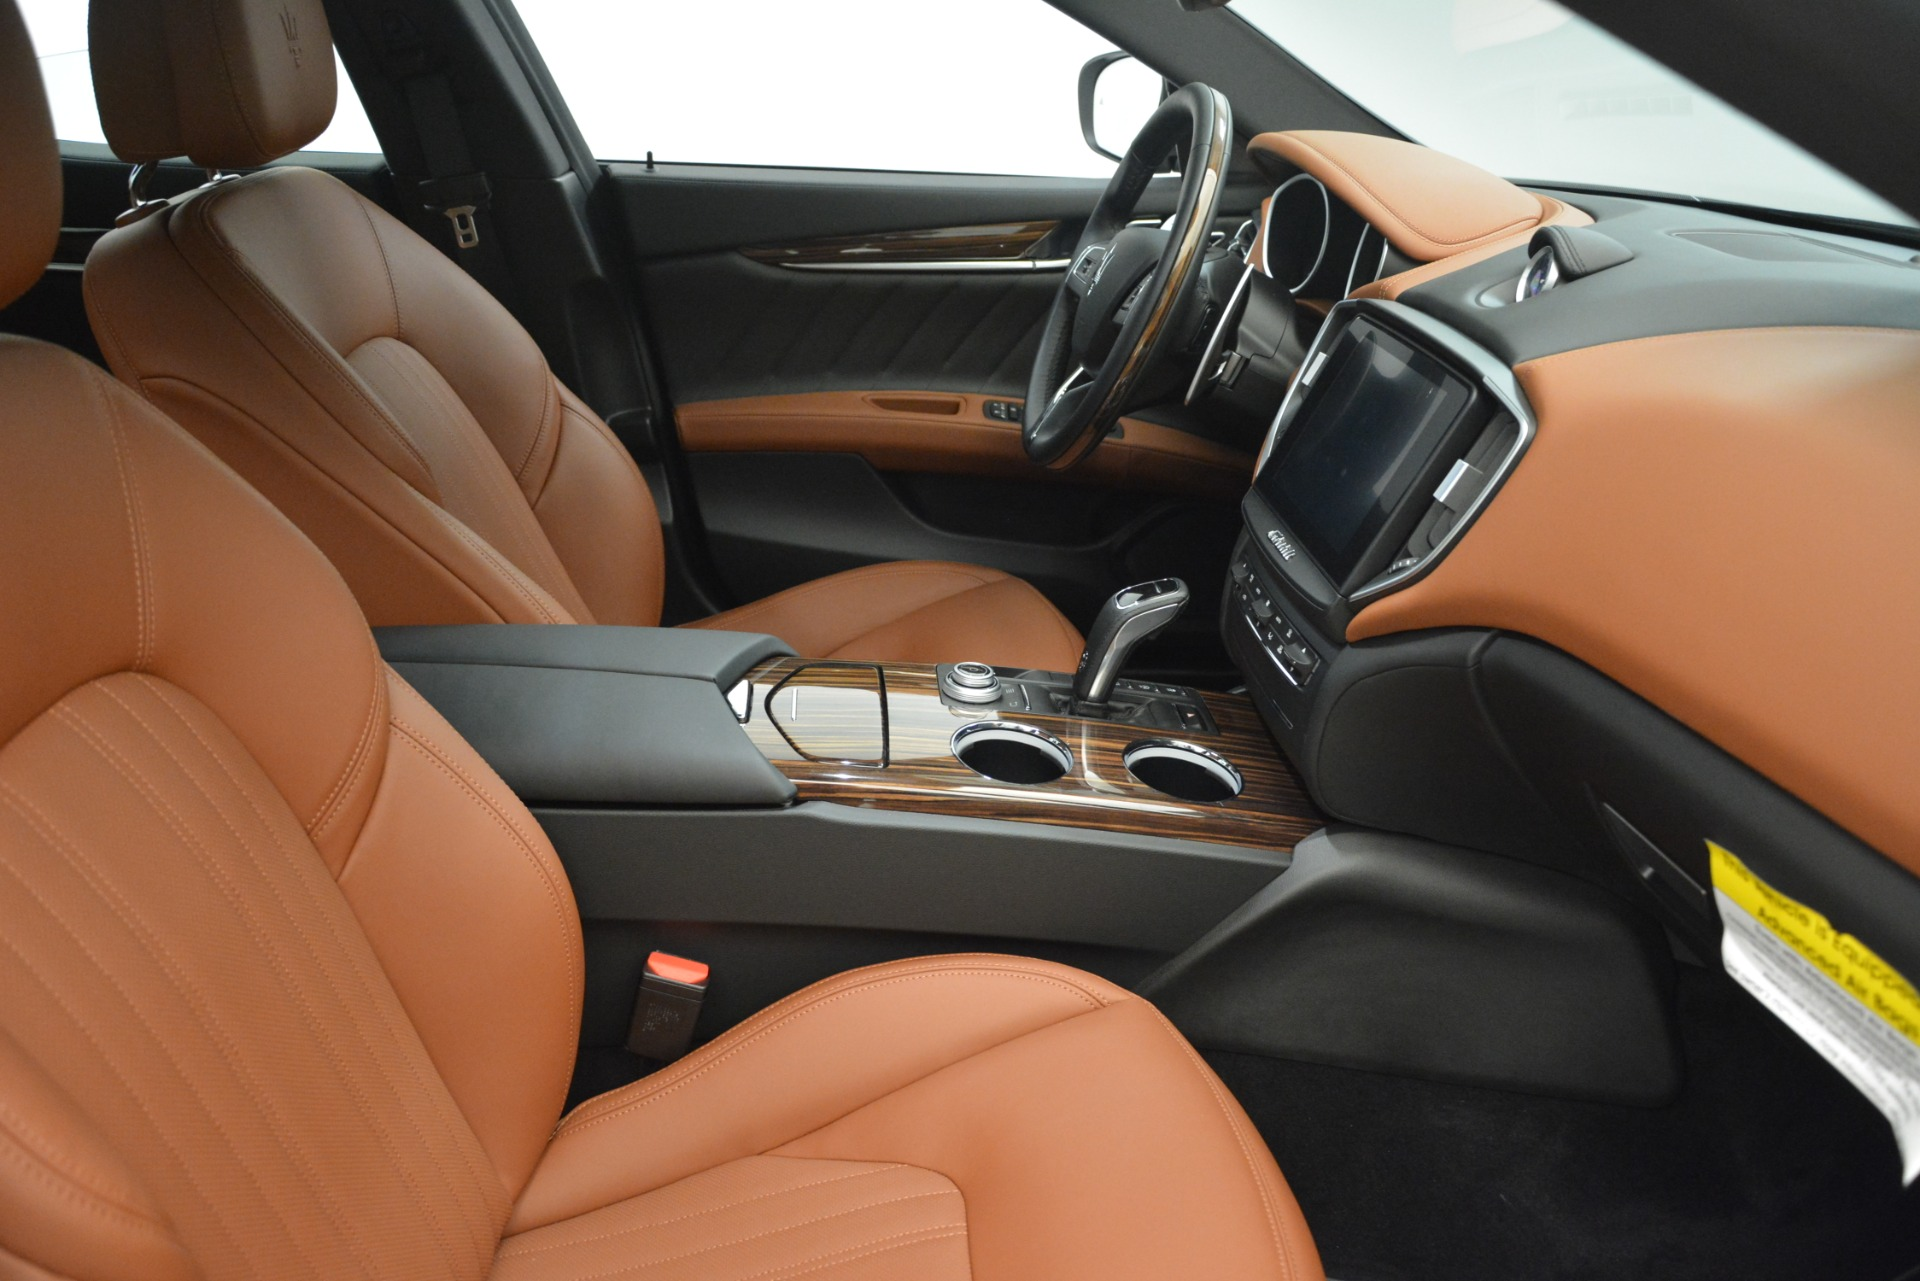 New 2019 Maserati Ghibli S Q4 GranLusso For Sale In Westport, CT 2589_p21